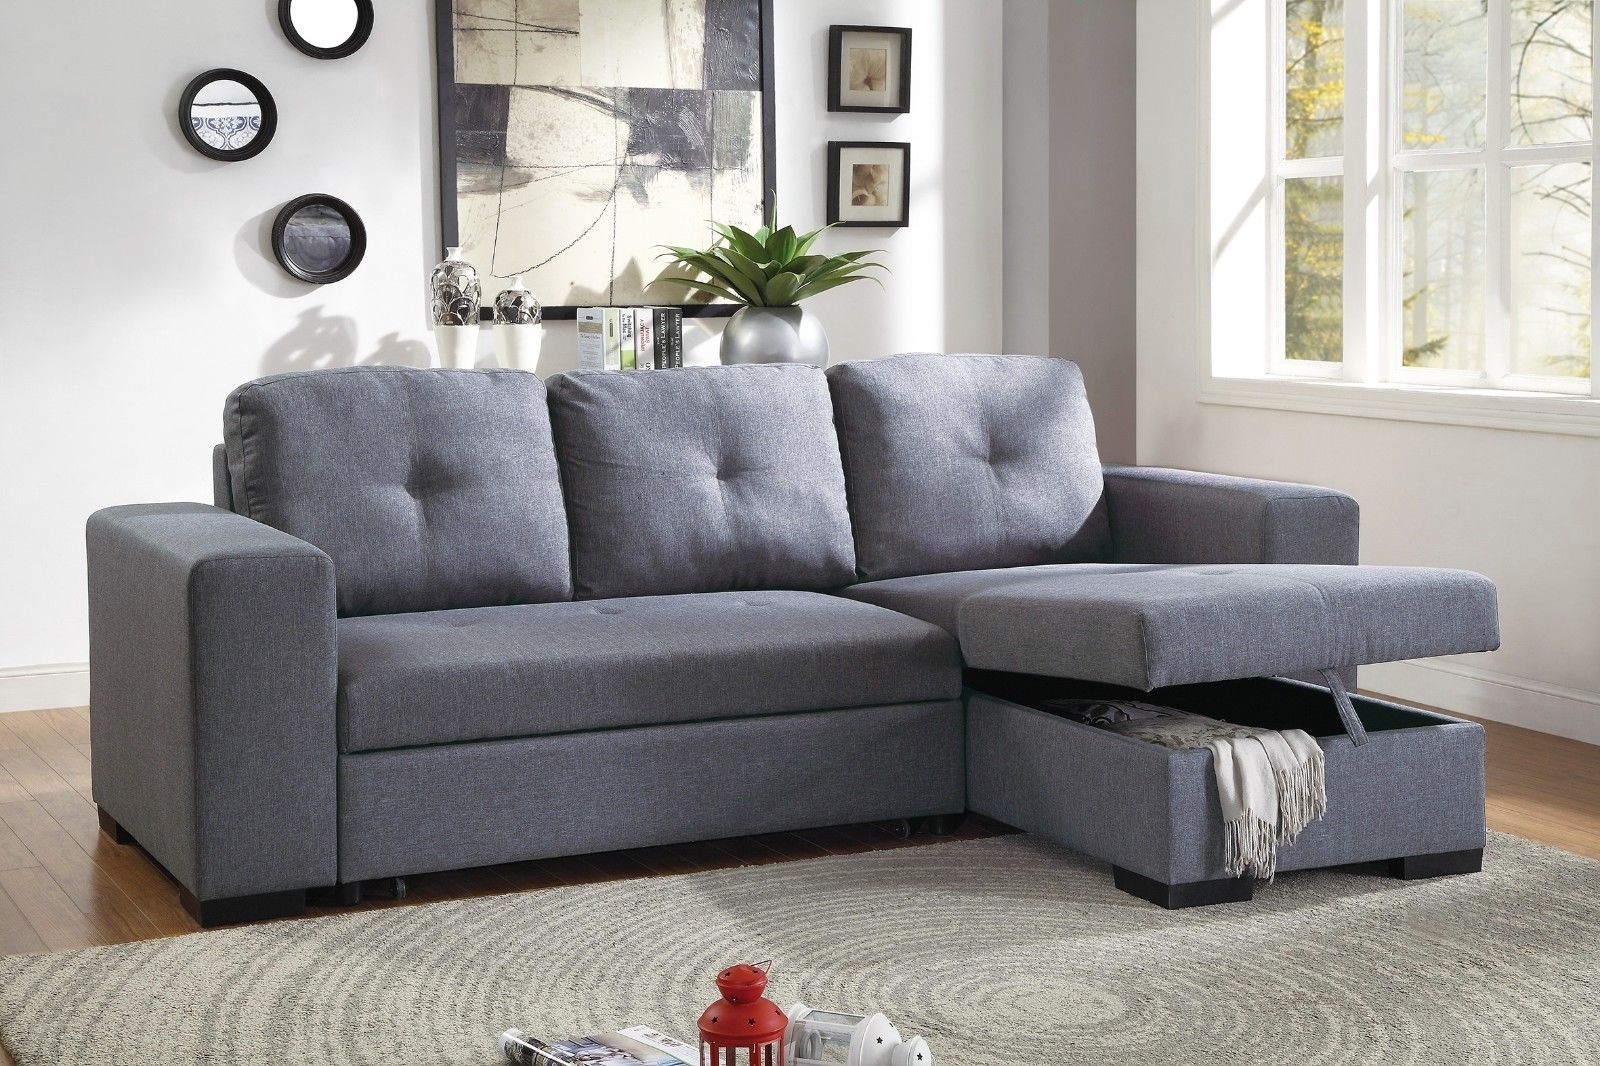 Convertible Sectional Sofa Modern Small Family 2pcs Set Sofa Reversible  Chaise